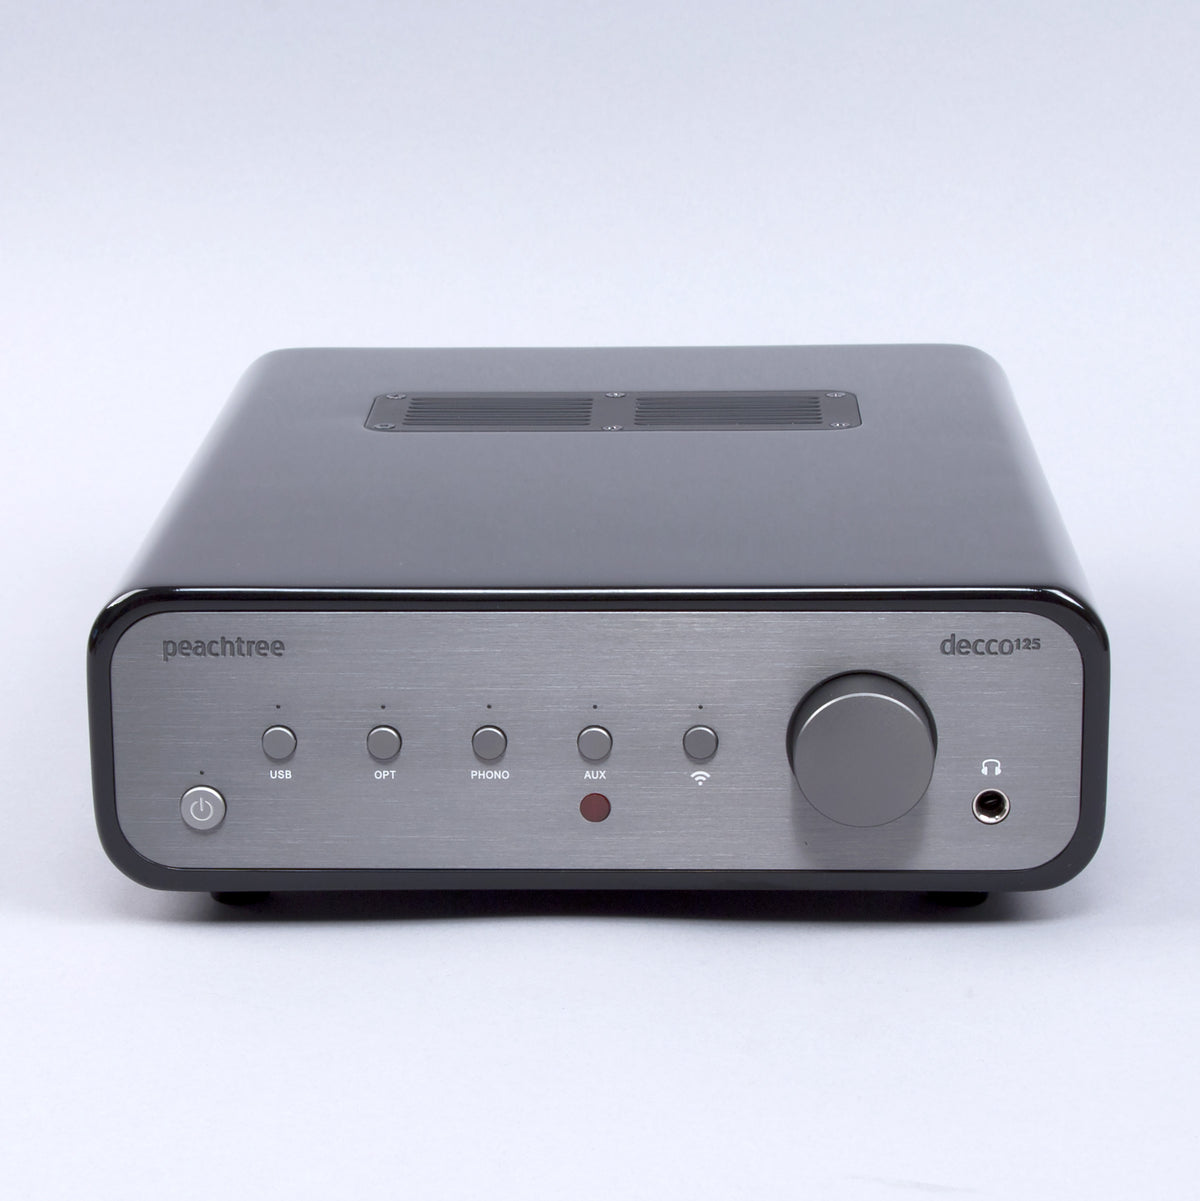 Peachtree Audio: decco125 SKY Integrated Amplifier (Phono Preamp, WiFi)